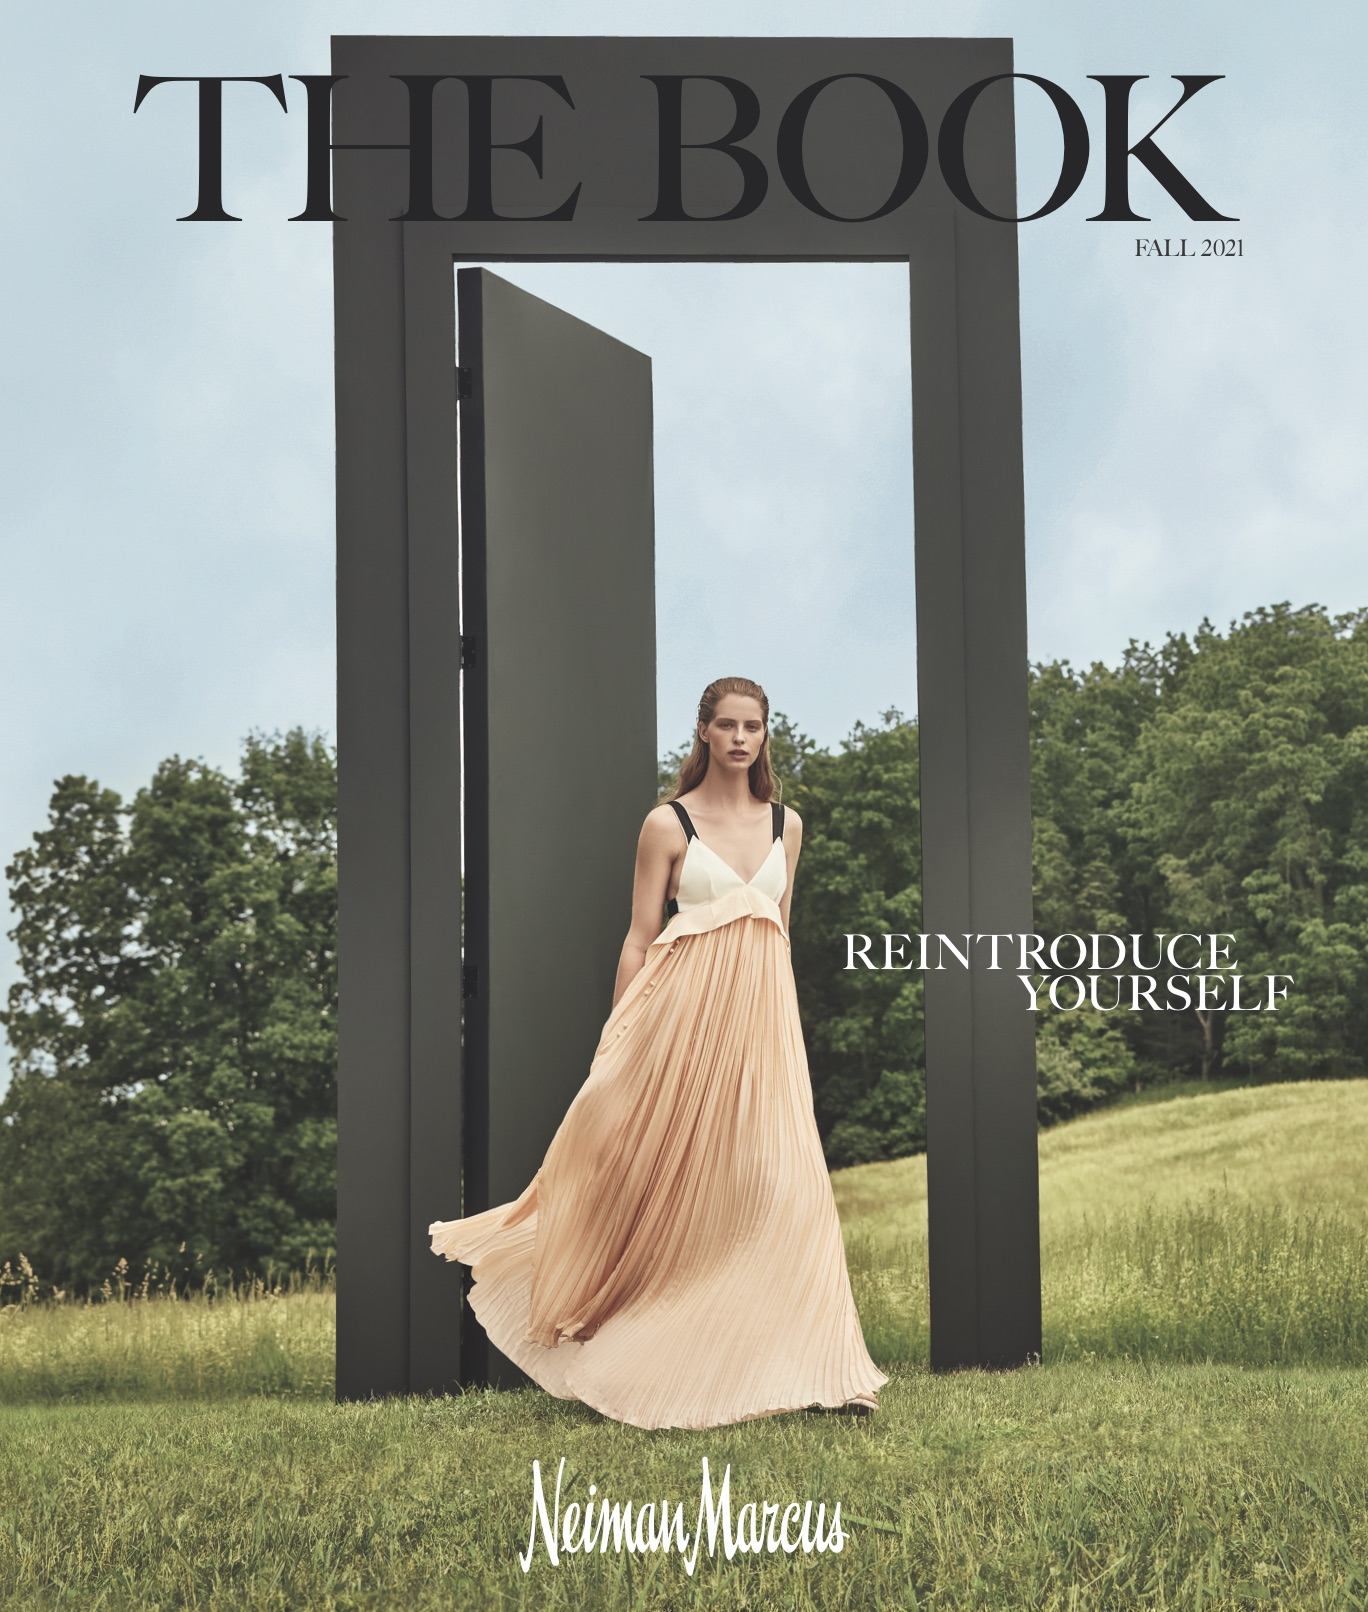 The cover of The Book fall edition.